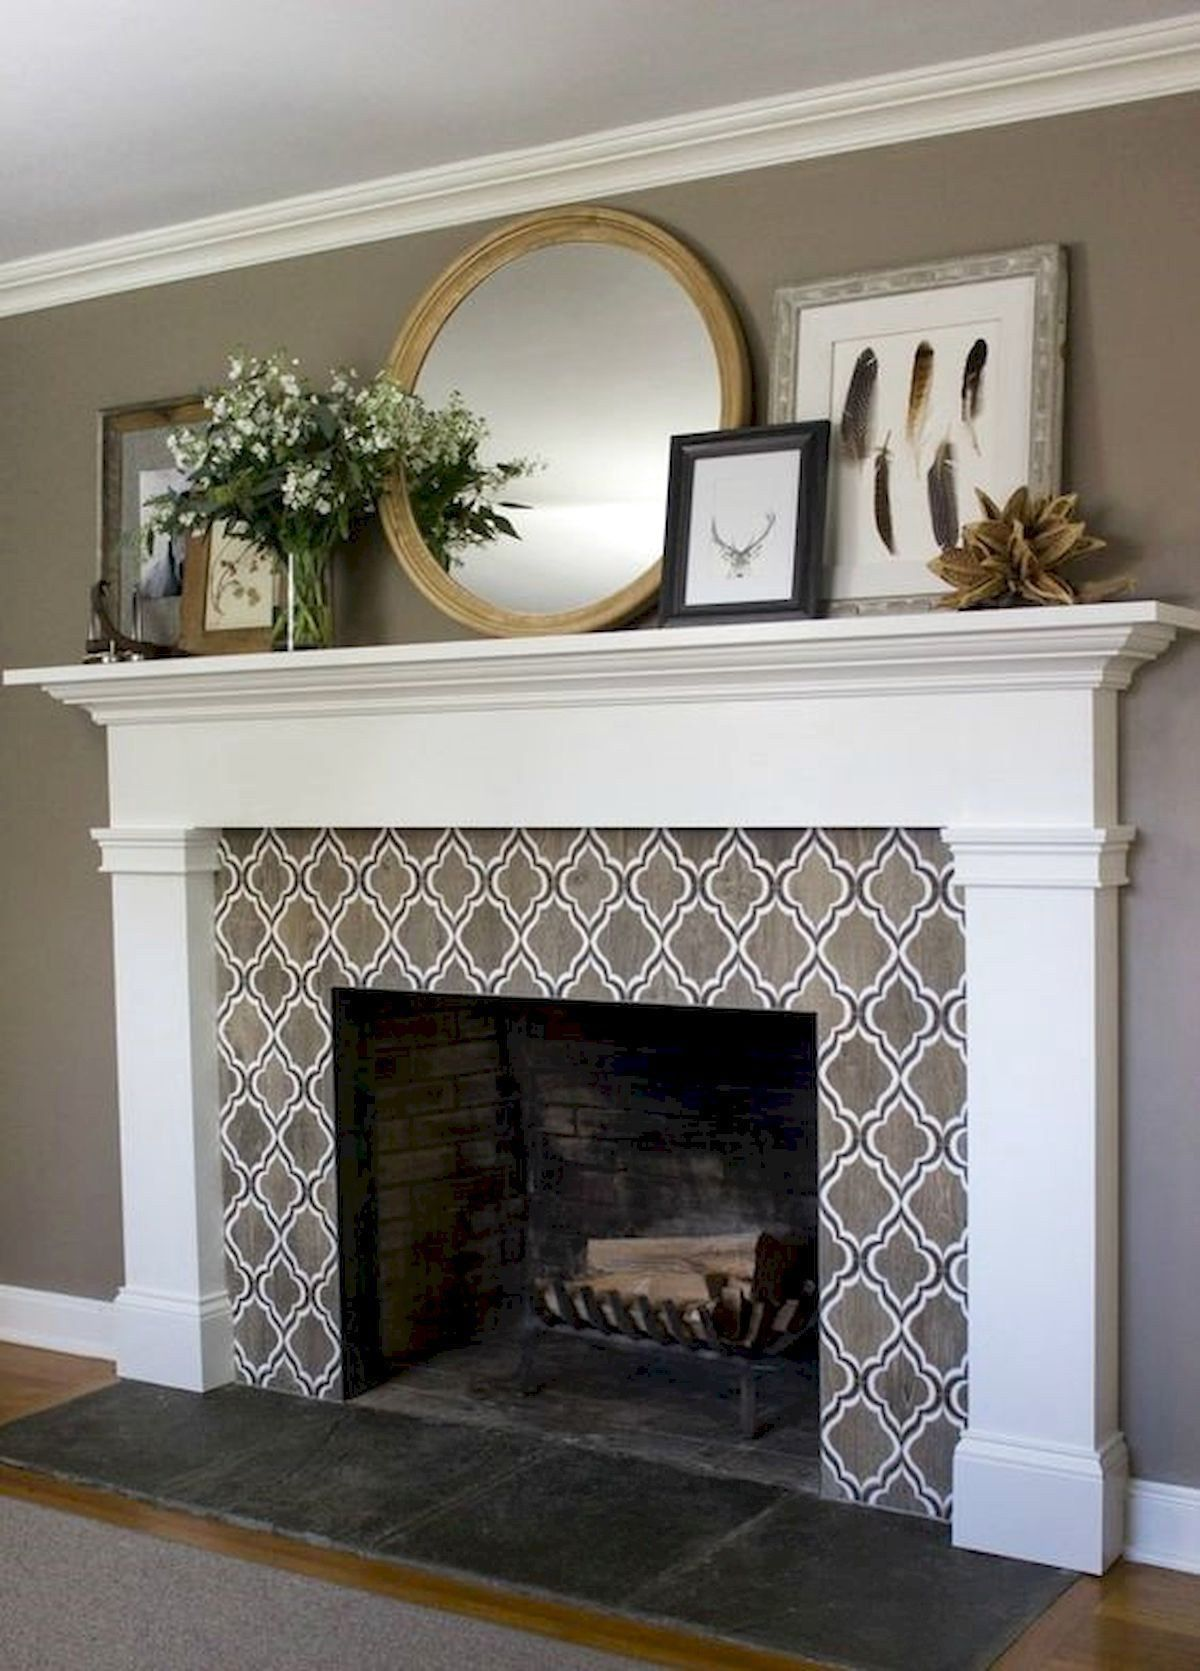 Best Modern Farmhouse Fireplace Mantel Decor Ideas Frugal Living Fireplace Mantel Decor Farmhouse Fireplace Mantels Craftsman Fireplace